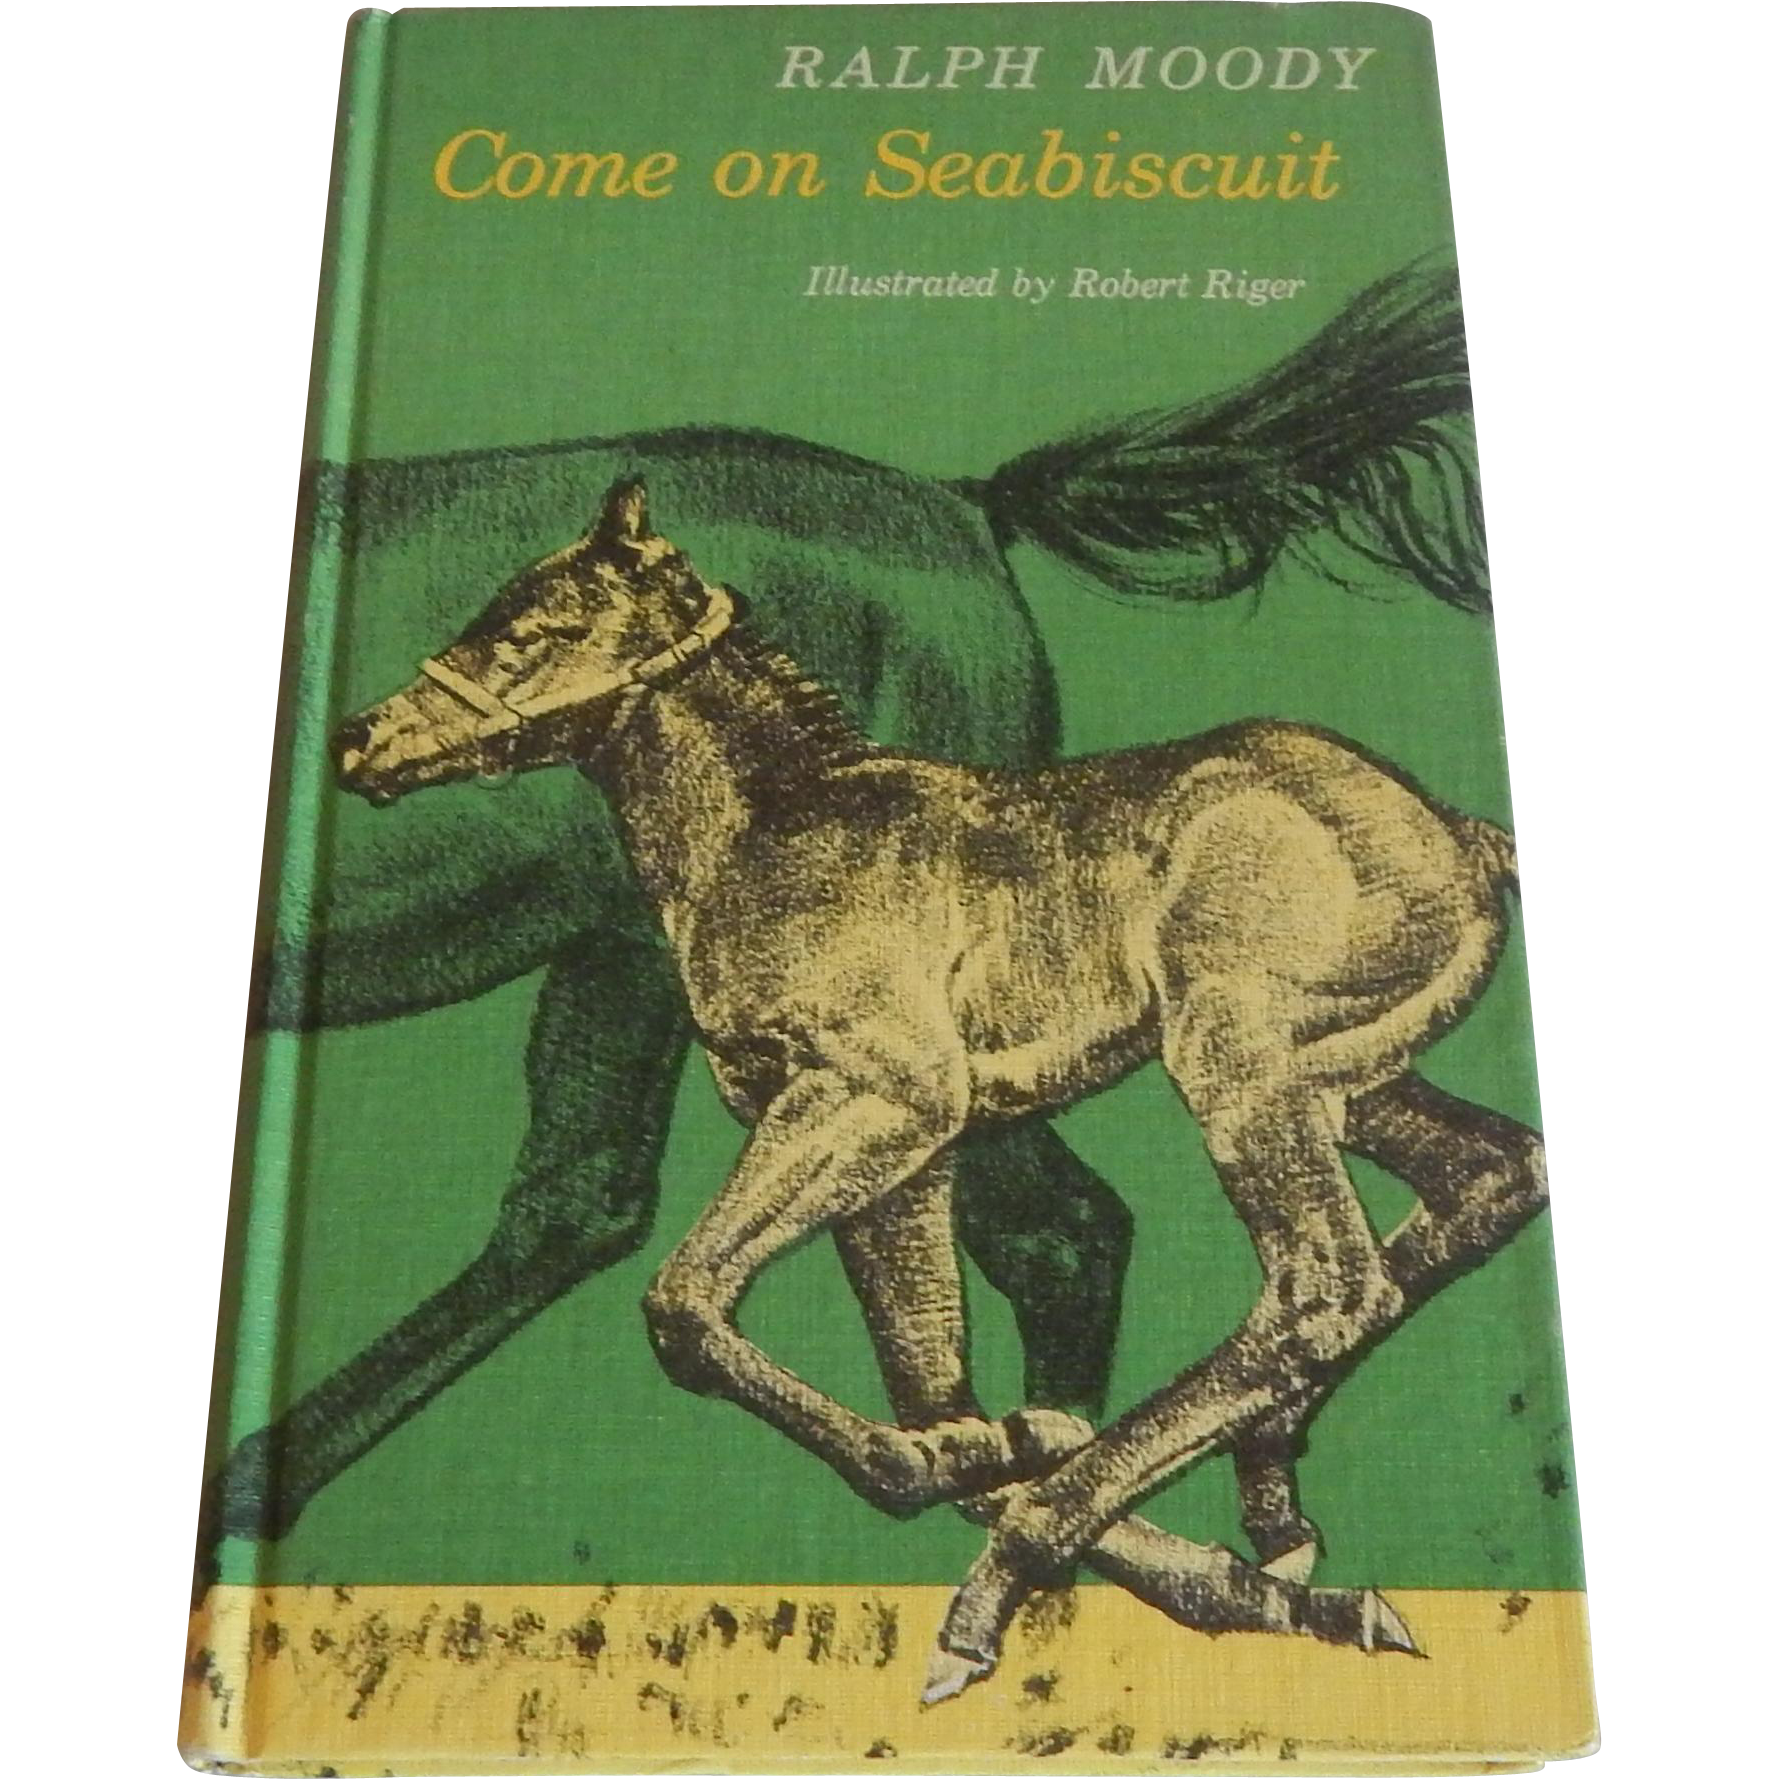 Come on Seabiscuit by Ralph Moody